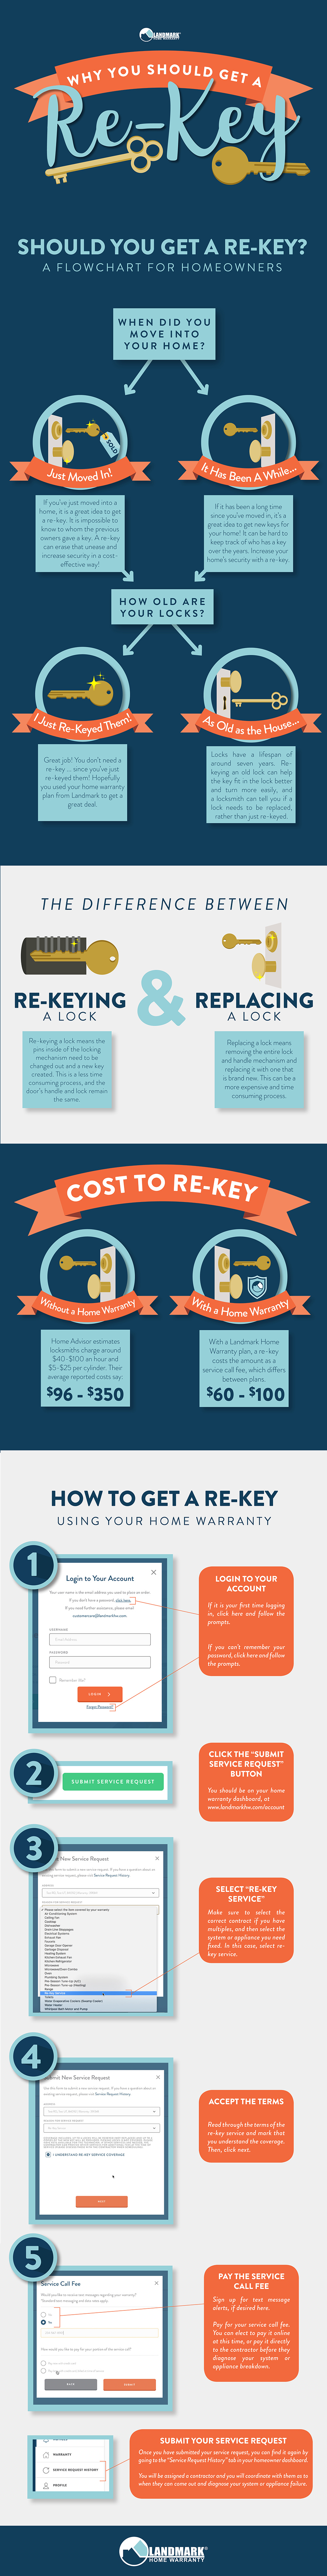 Why should you get a re-key home warranty plan.